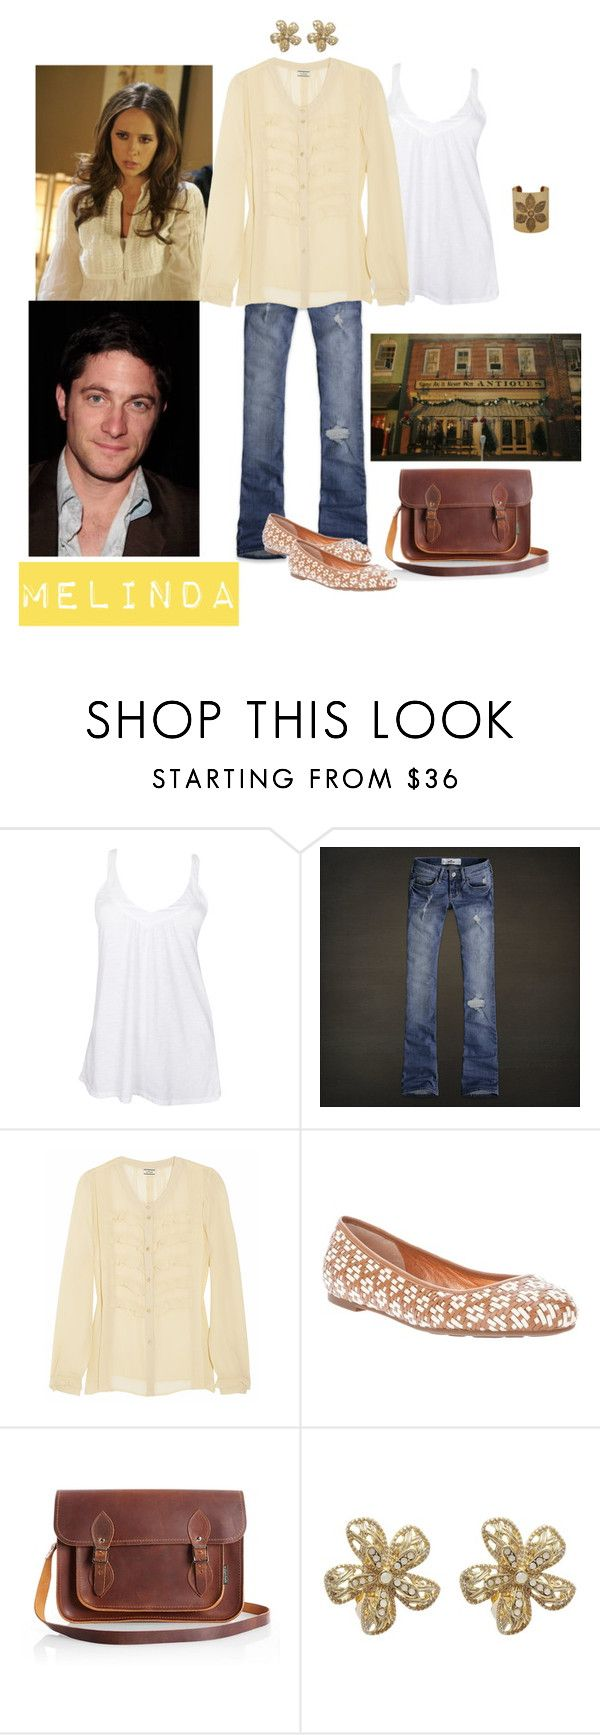 """""""Melinda Gordon 2"""" by tinyturtle73 ❤ liked on Polyvore featuring Fresh Laundry, Hollister Co., By Malene Birger, Marc by Marc Jacobs, Zatchels, Carolee and Forever 21"""